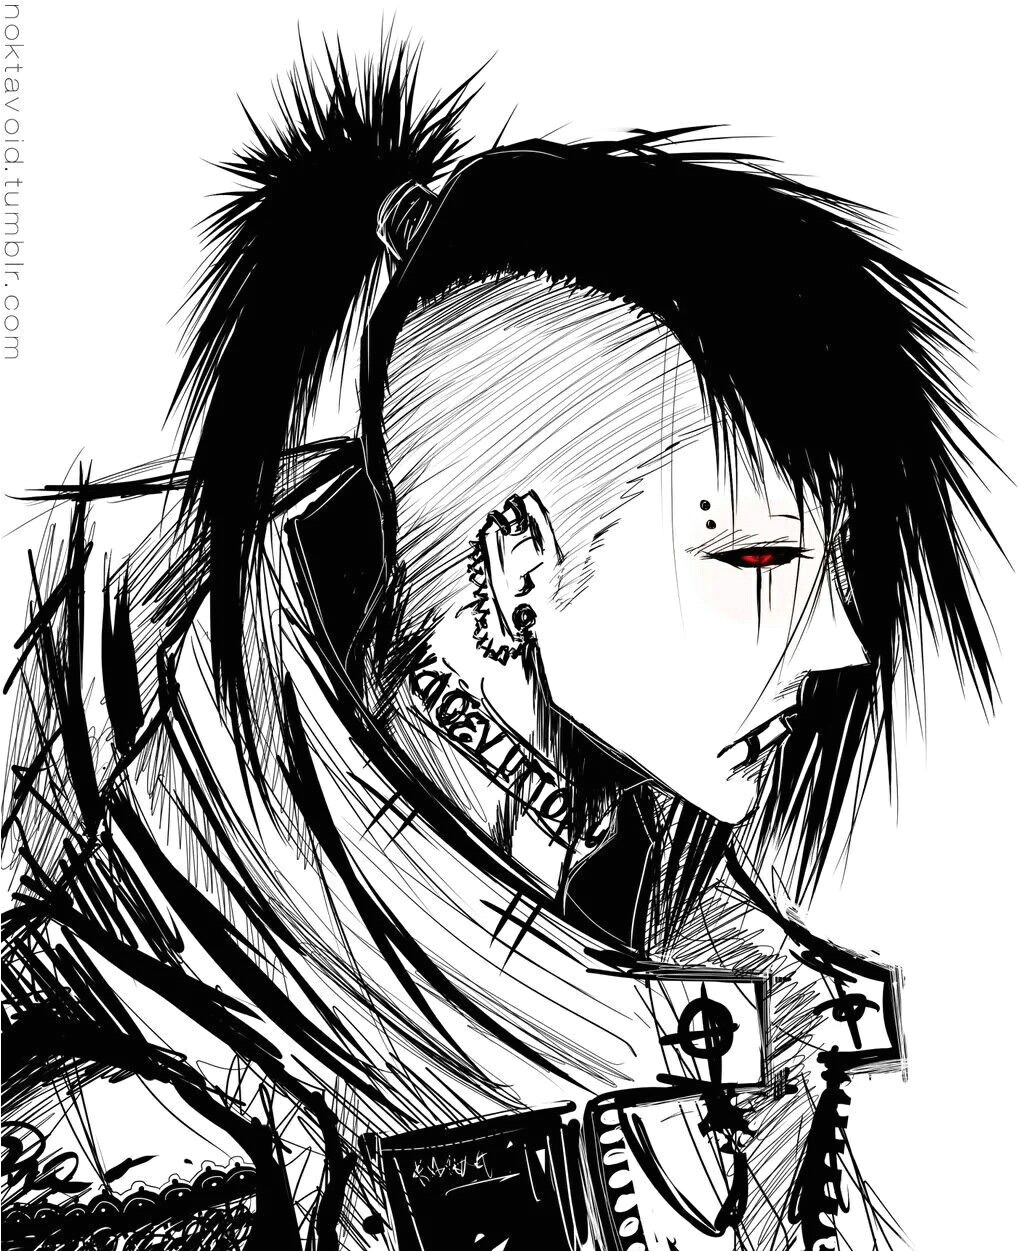 Uta with a more punk looking hairstyle